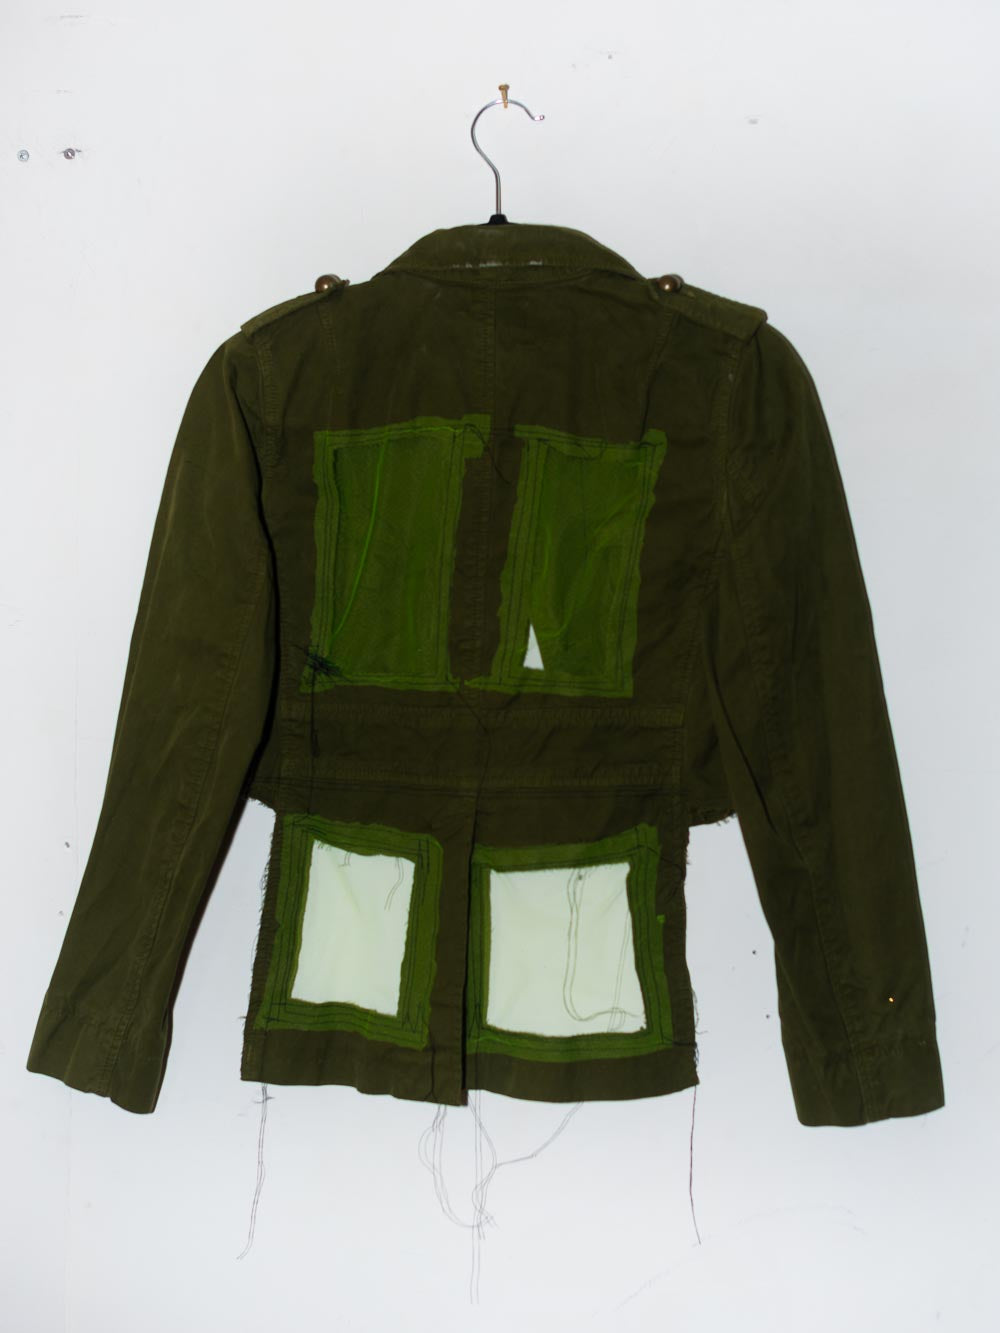 Reworked Cropped Vintage Green Jacket w/ peekaboo windows in back